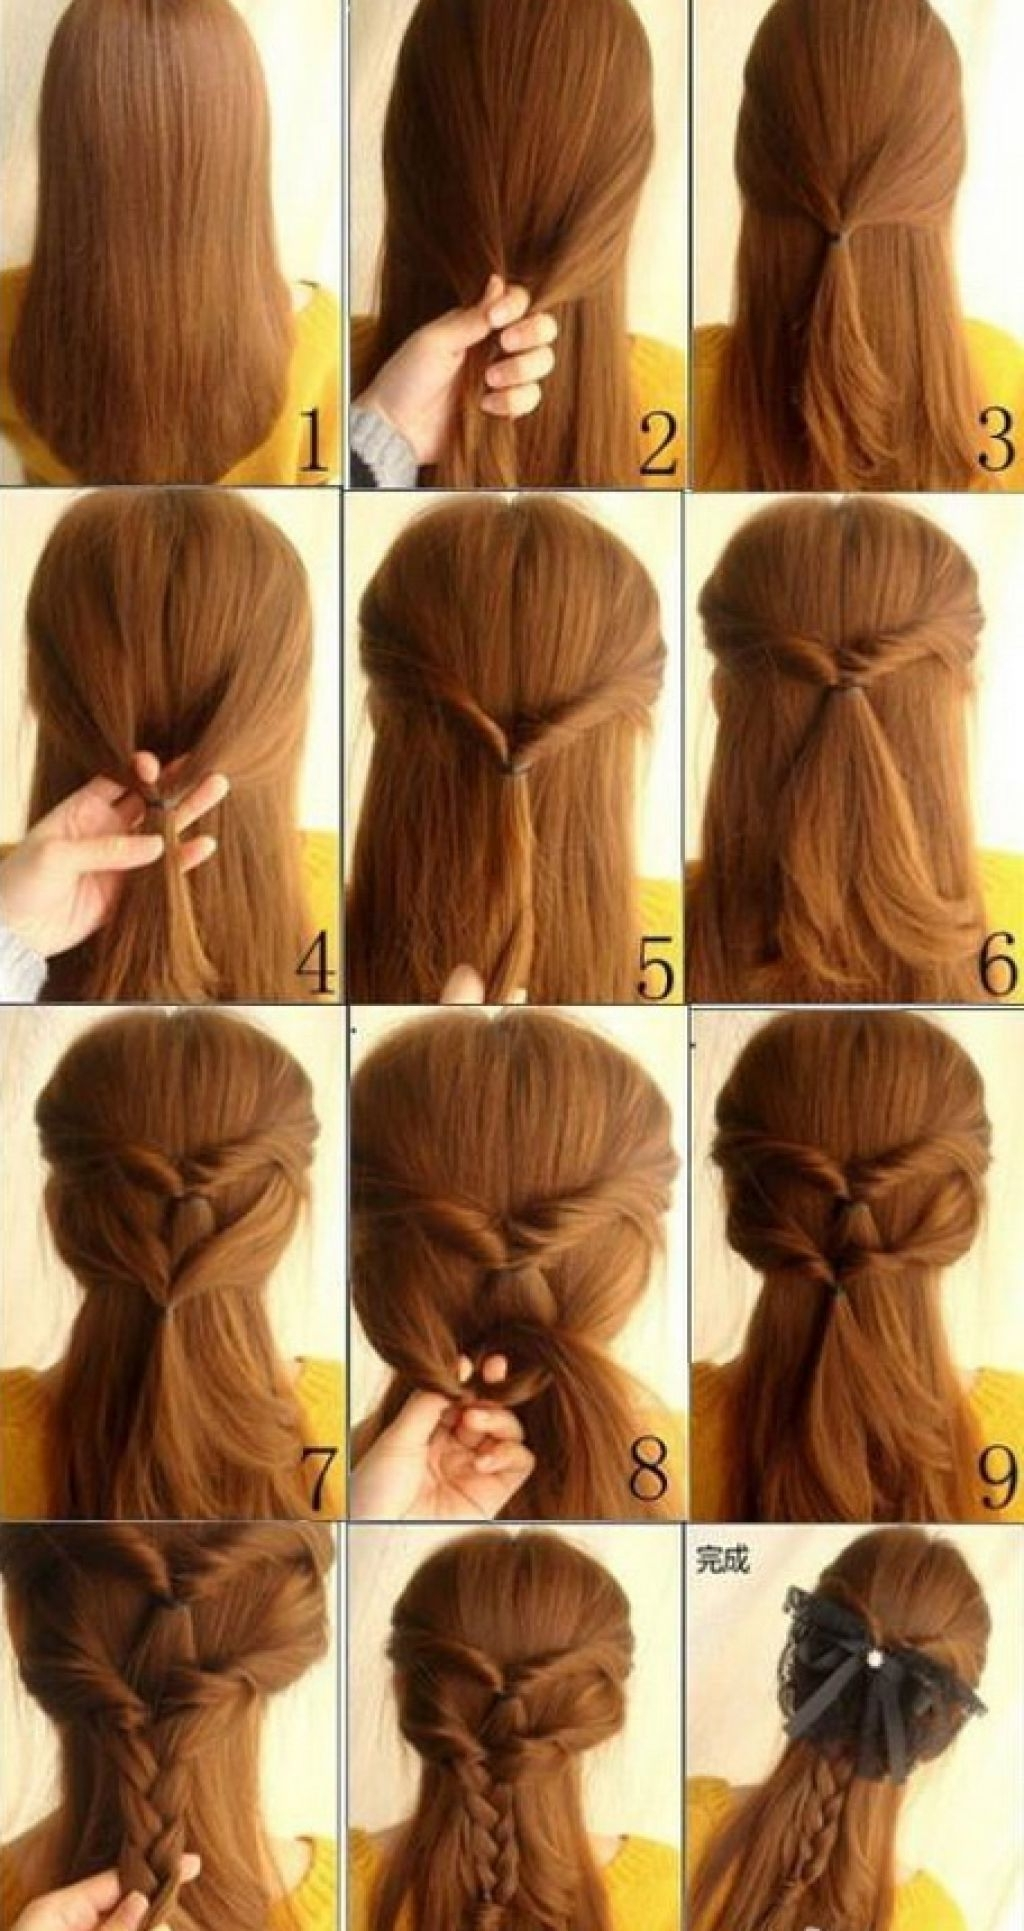 Cute Simple Hairstyles Long Hair – Hairstyle For Women & Man Intended For Favorite Cute Easy Wedding Hairstyles For Long Hair (View 6 of 15)